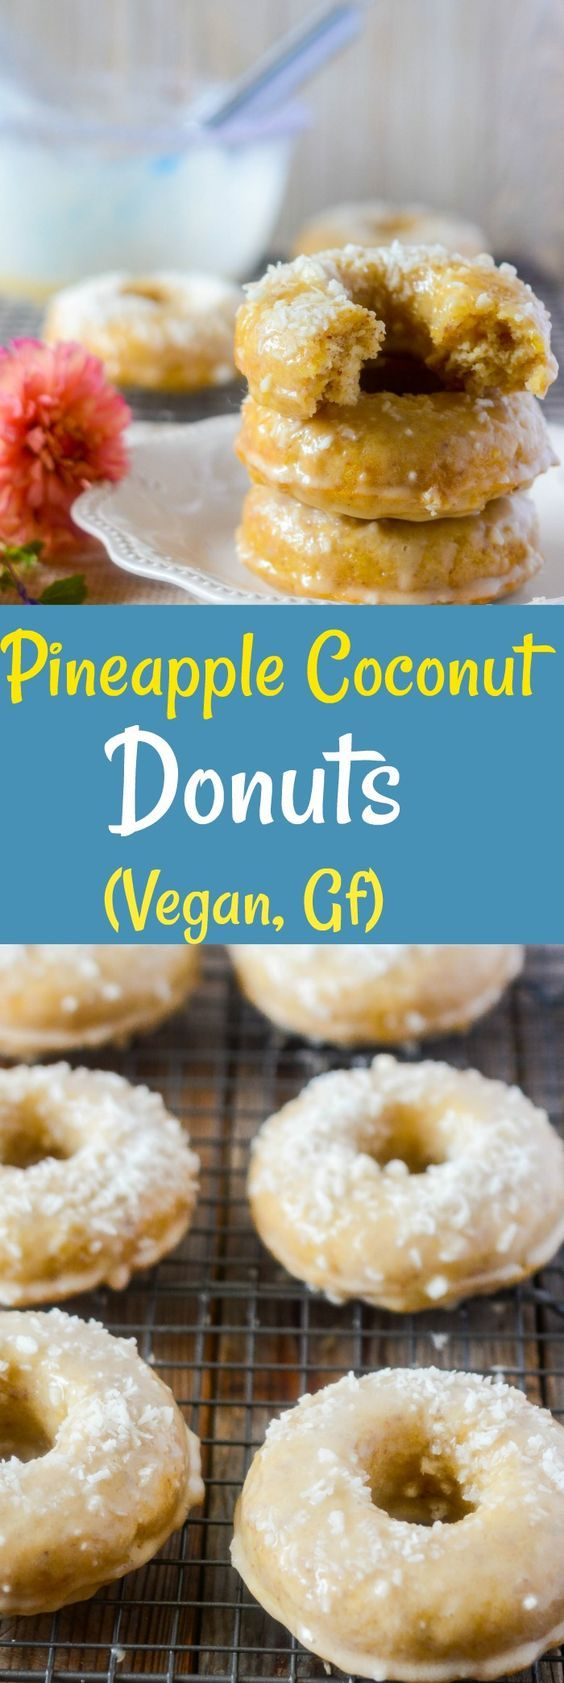 These Vegan Pineapple Coconut Donuts are so moist and flavorful.